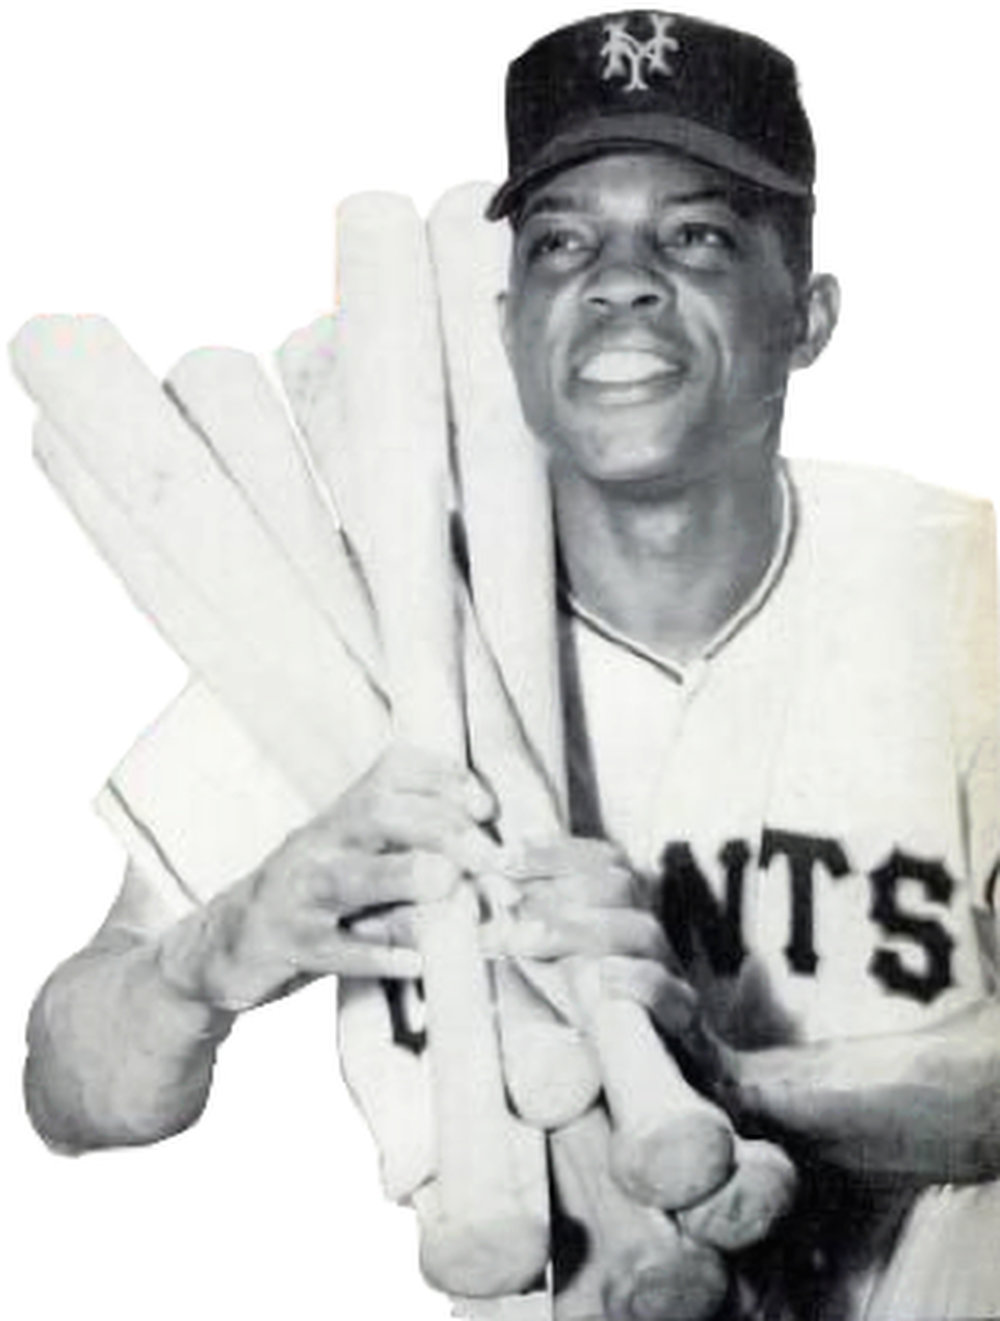 In his 1965 MVP season, Mays hit career high 52 home runs including the 500th of his career. (Courtesy/Wikimedia, Creative Commons)